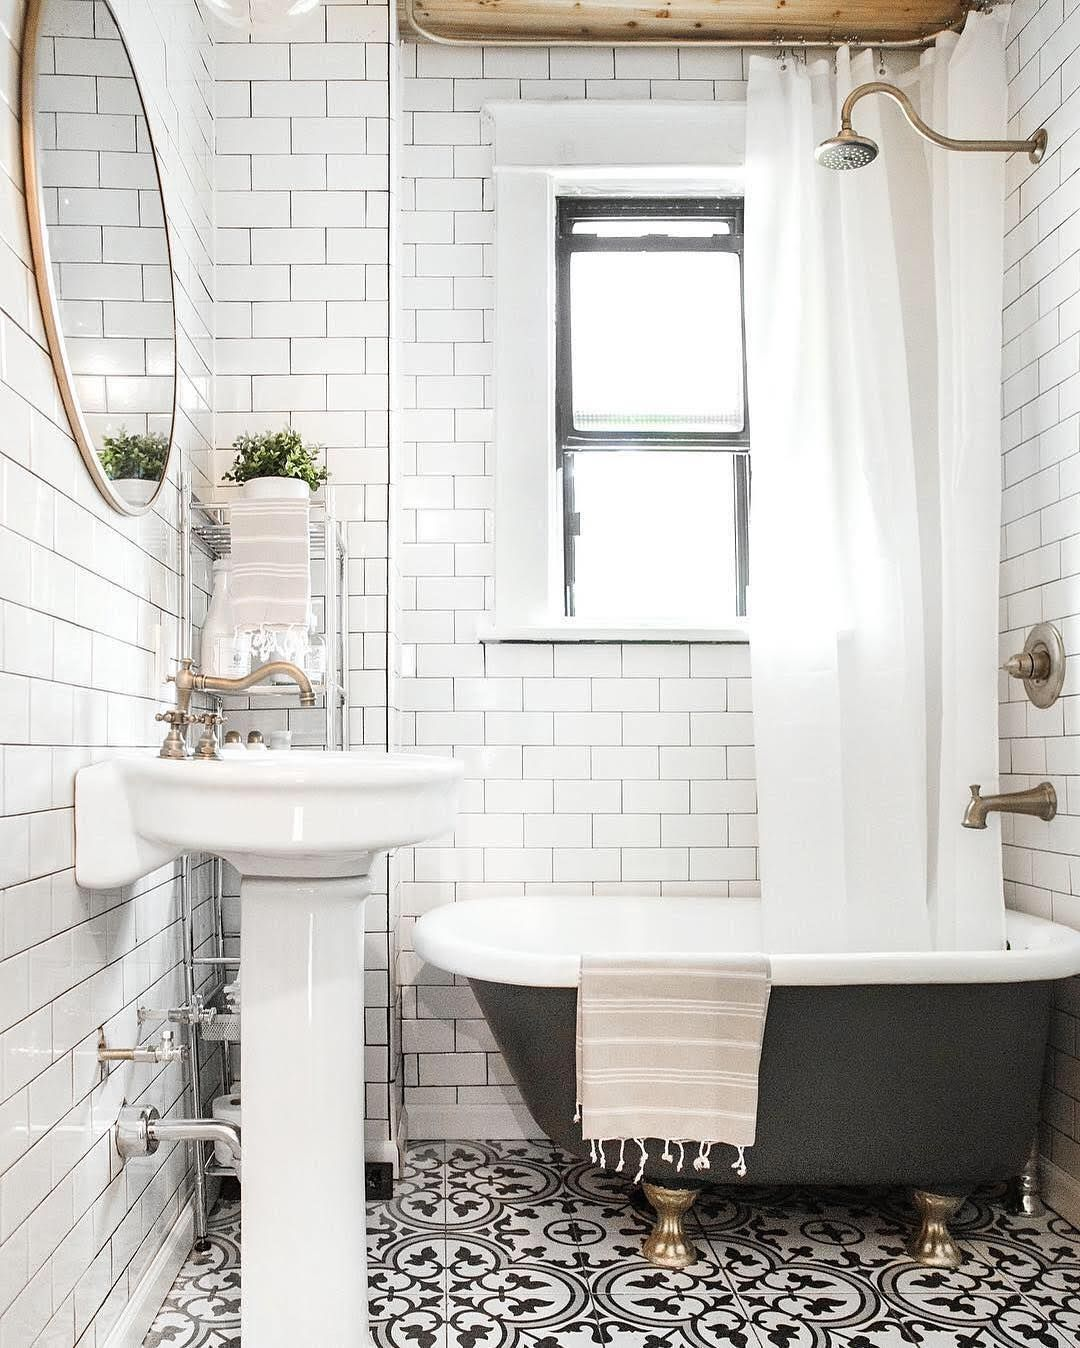 Charming Freshen Up Your Bathroom In 2017 With This Mixed Tile Trend